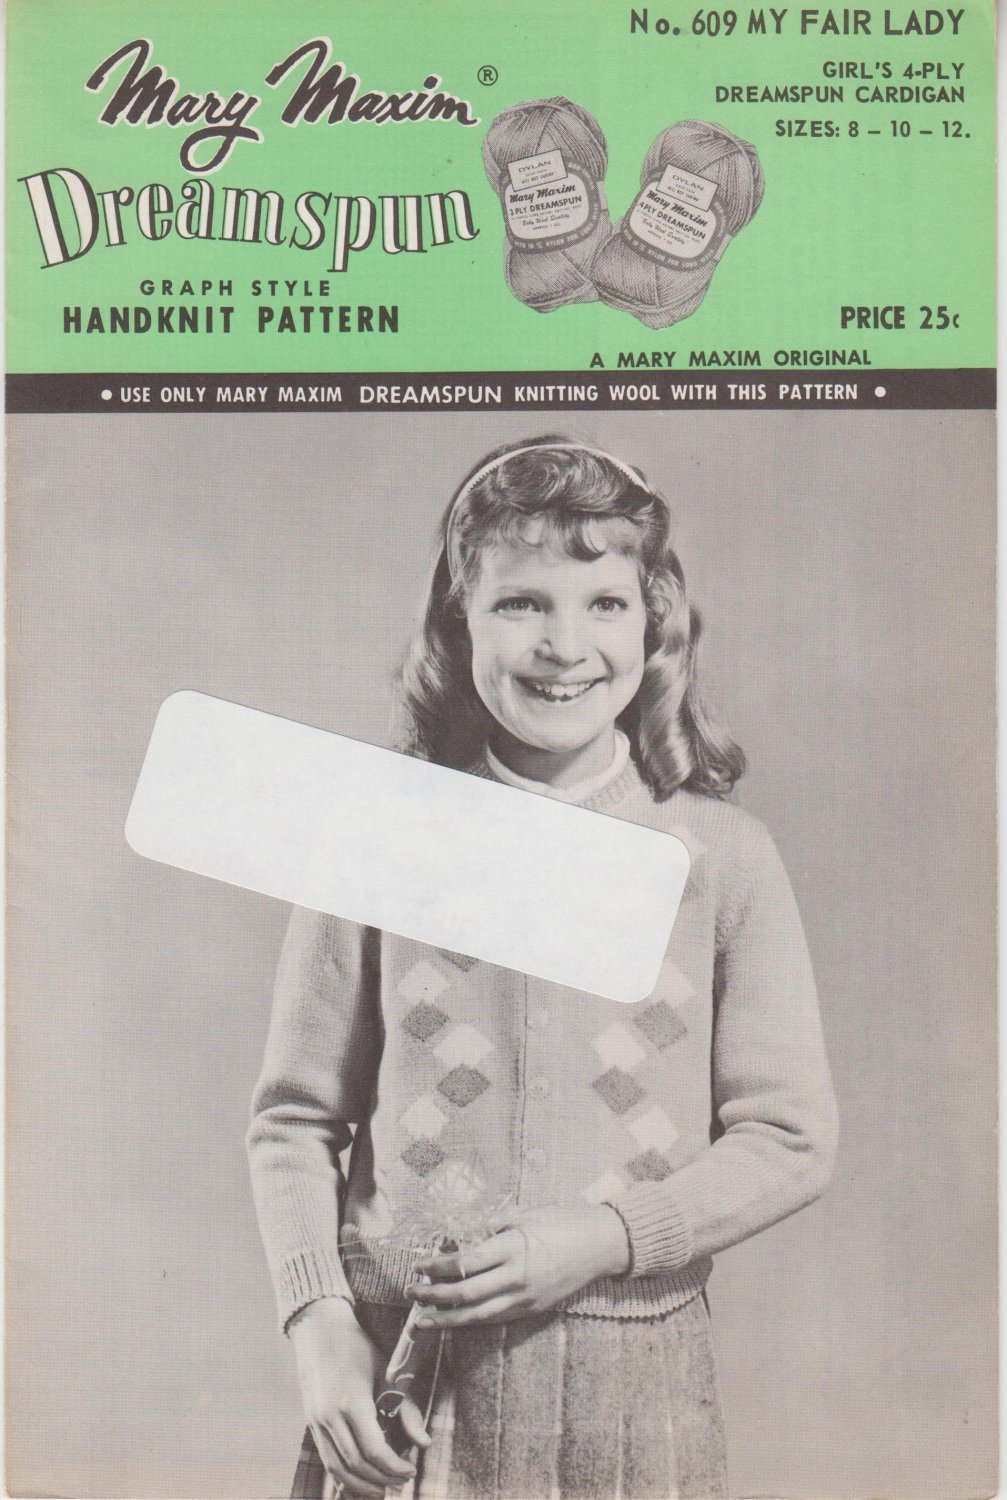 Mary Maxim Vintage Graph Style Knitting Pattern No. 609 My Fair Lady